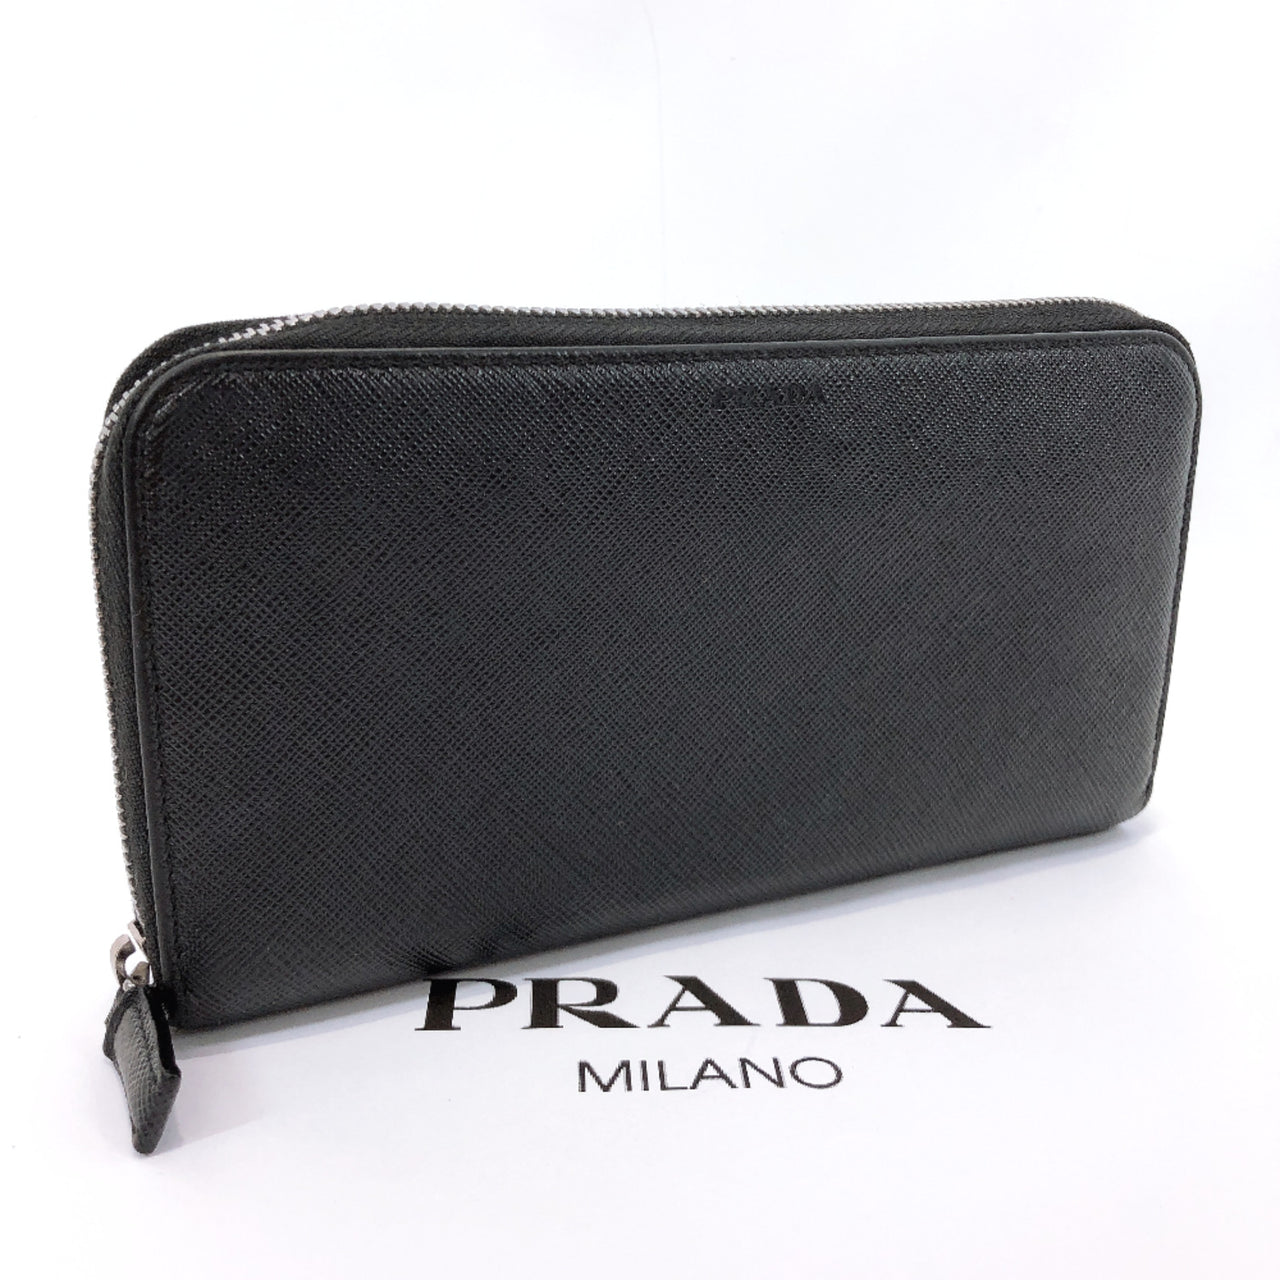 PRADA purse Round zip Safiano leather black mens Used